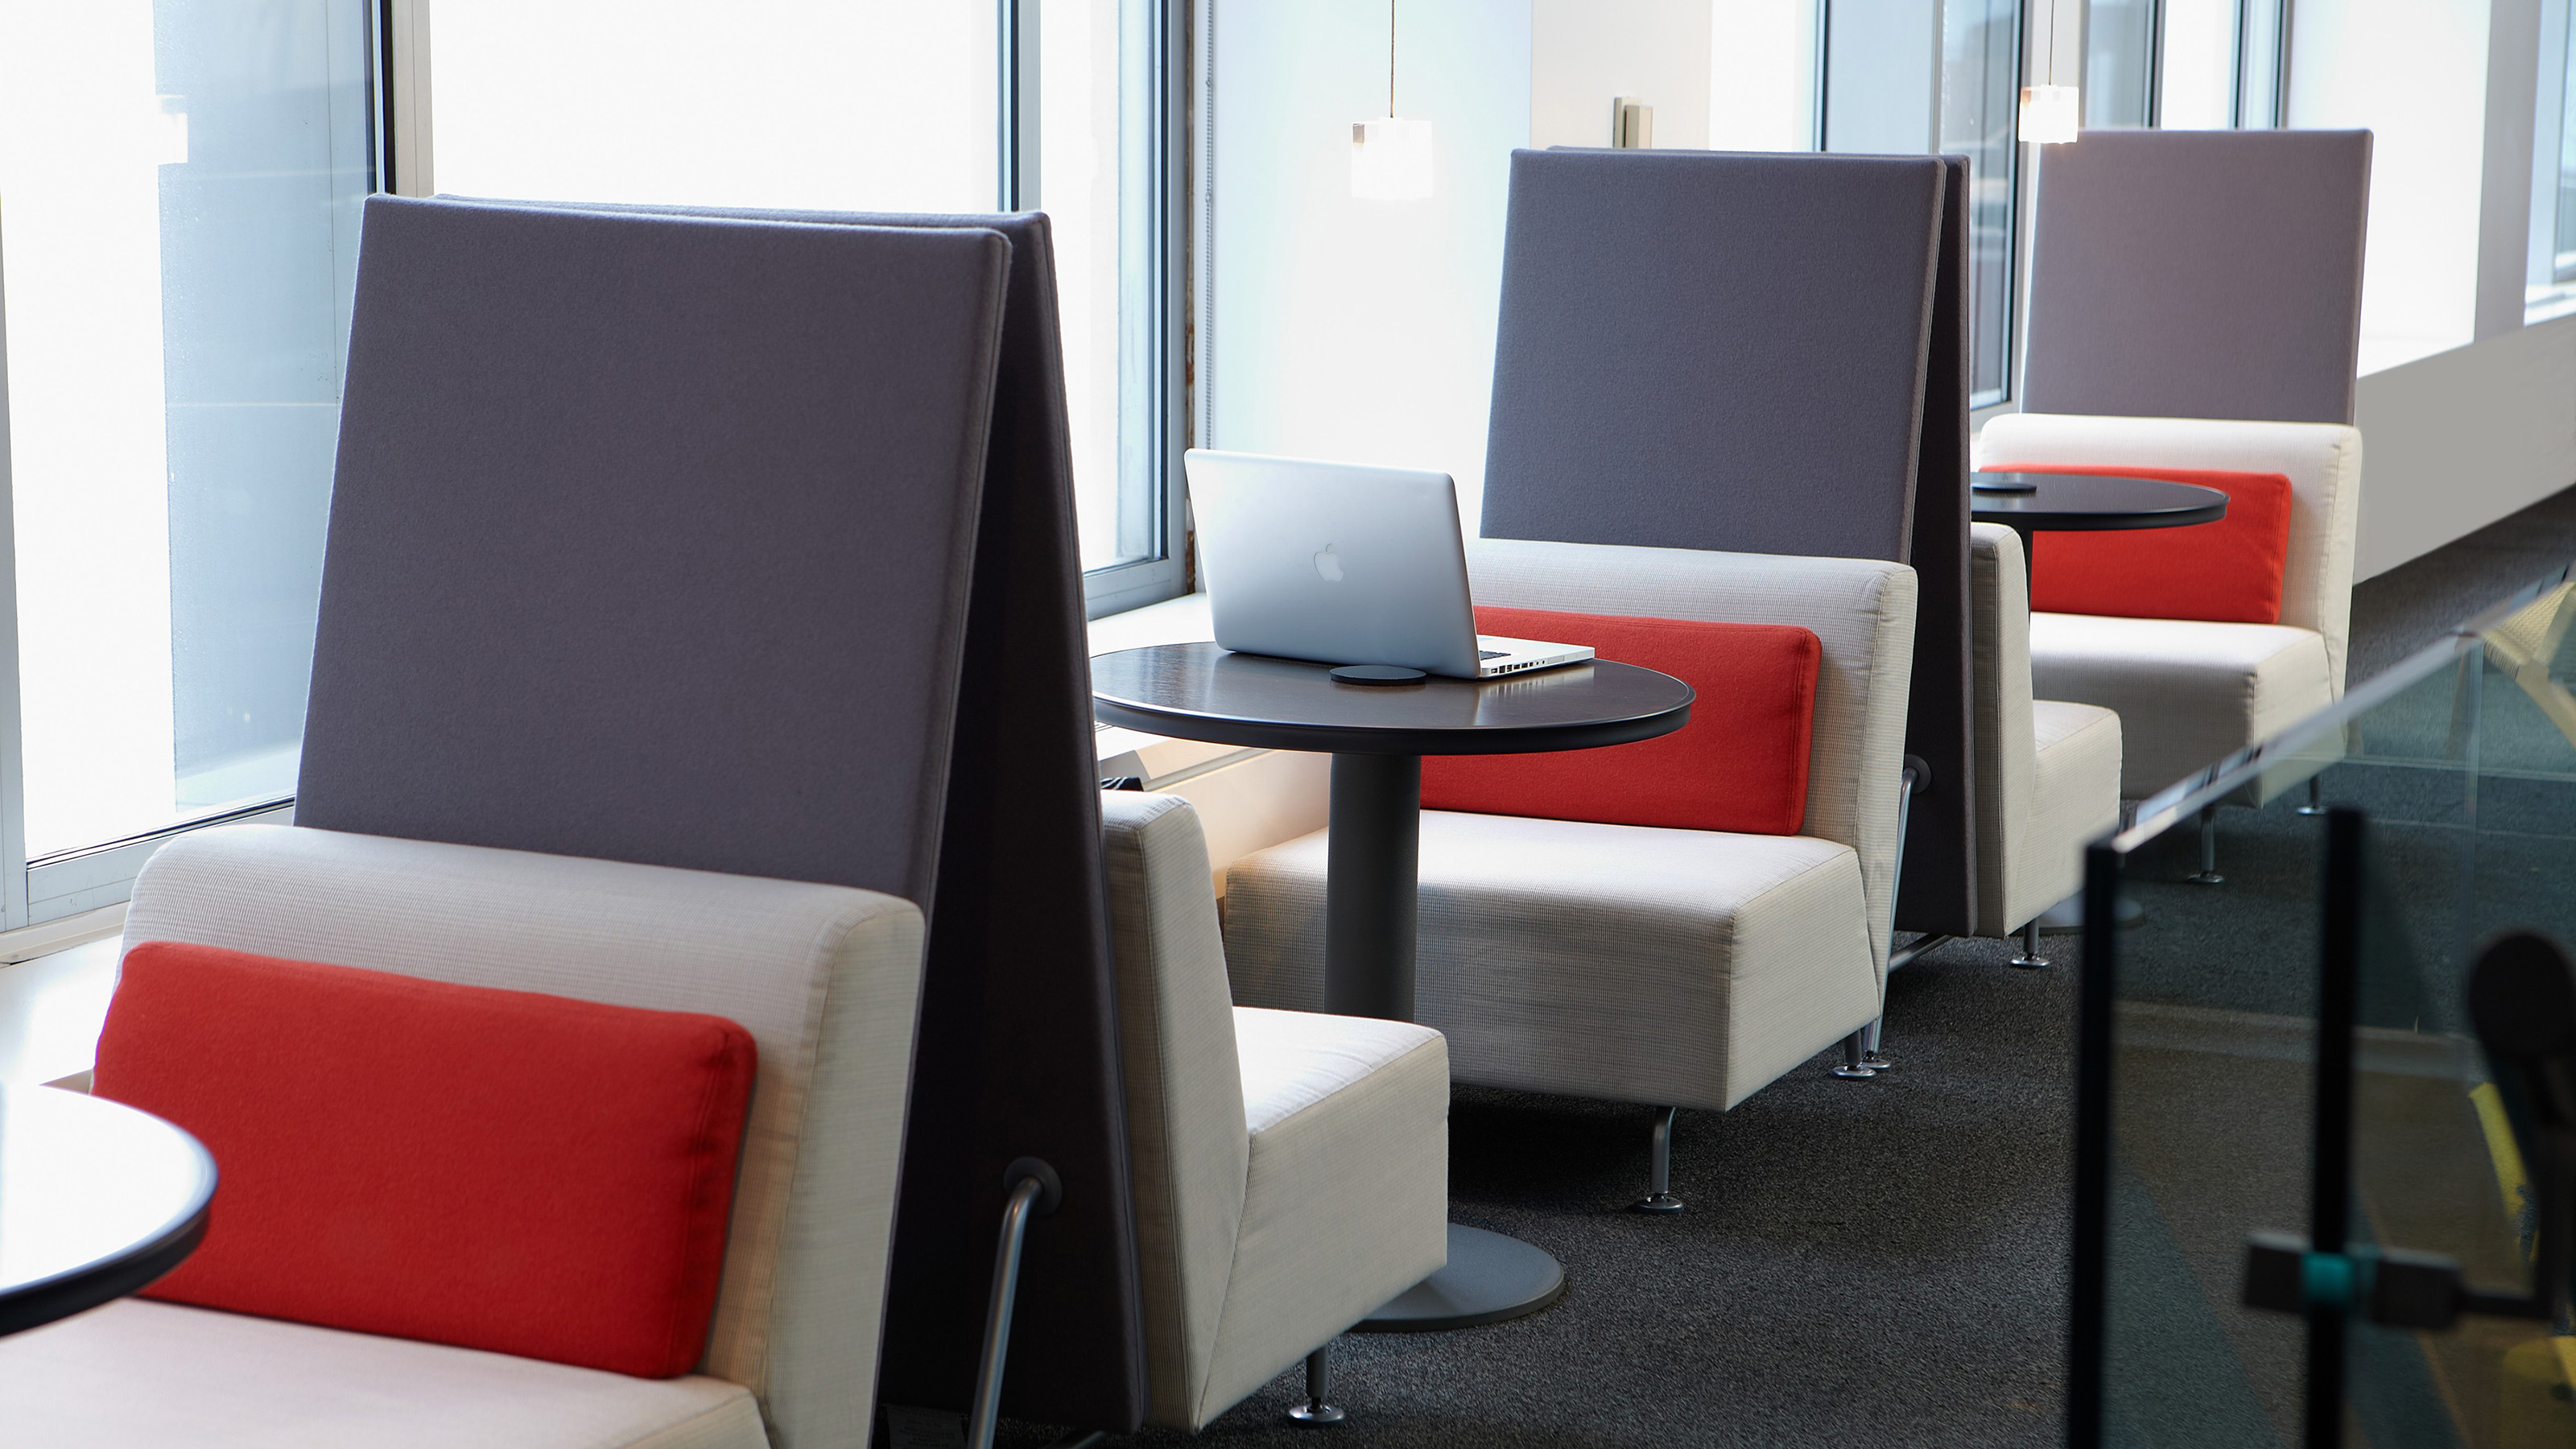 steelcase classroom chairs queen anne chair slipcover coalesse bix collaborative office furniture